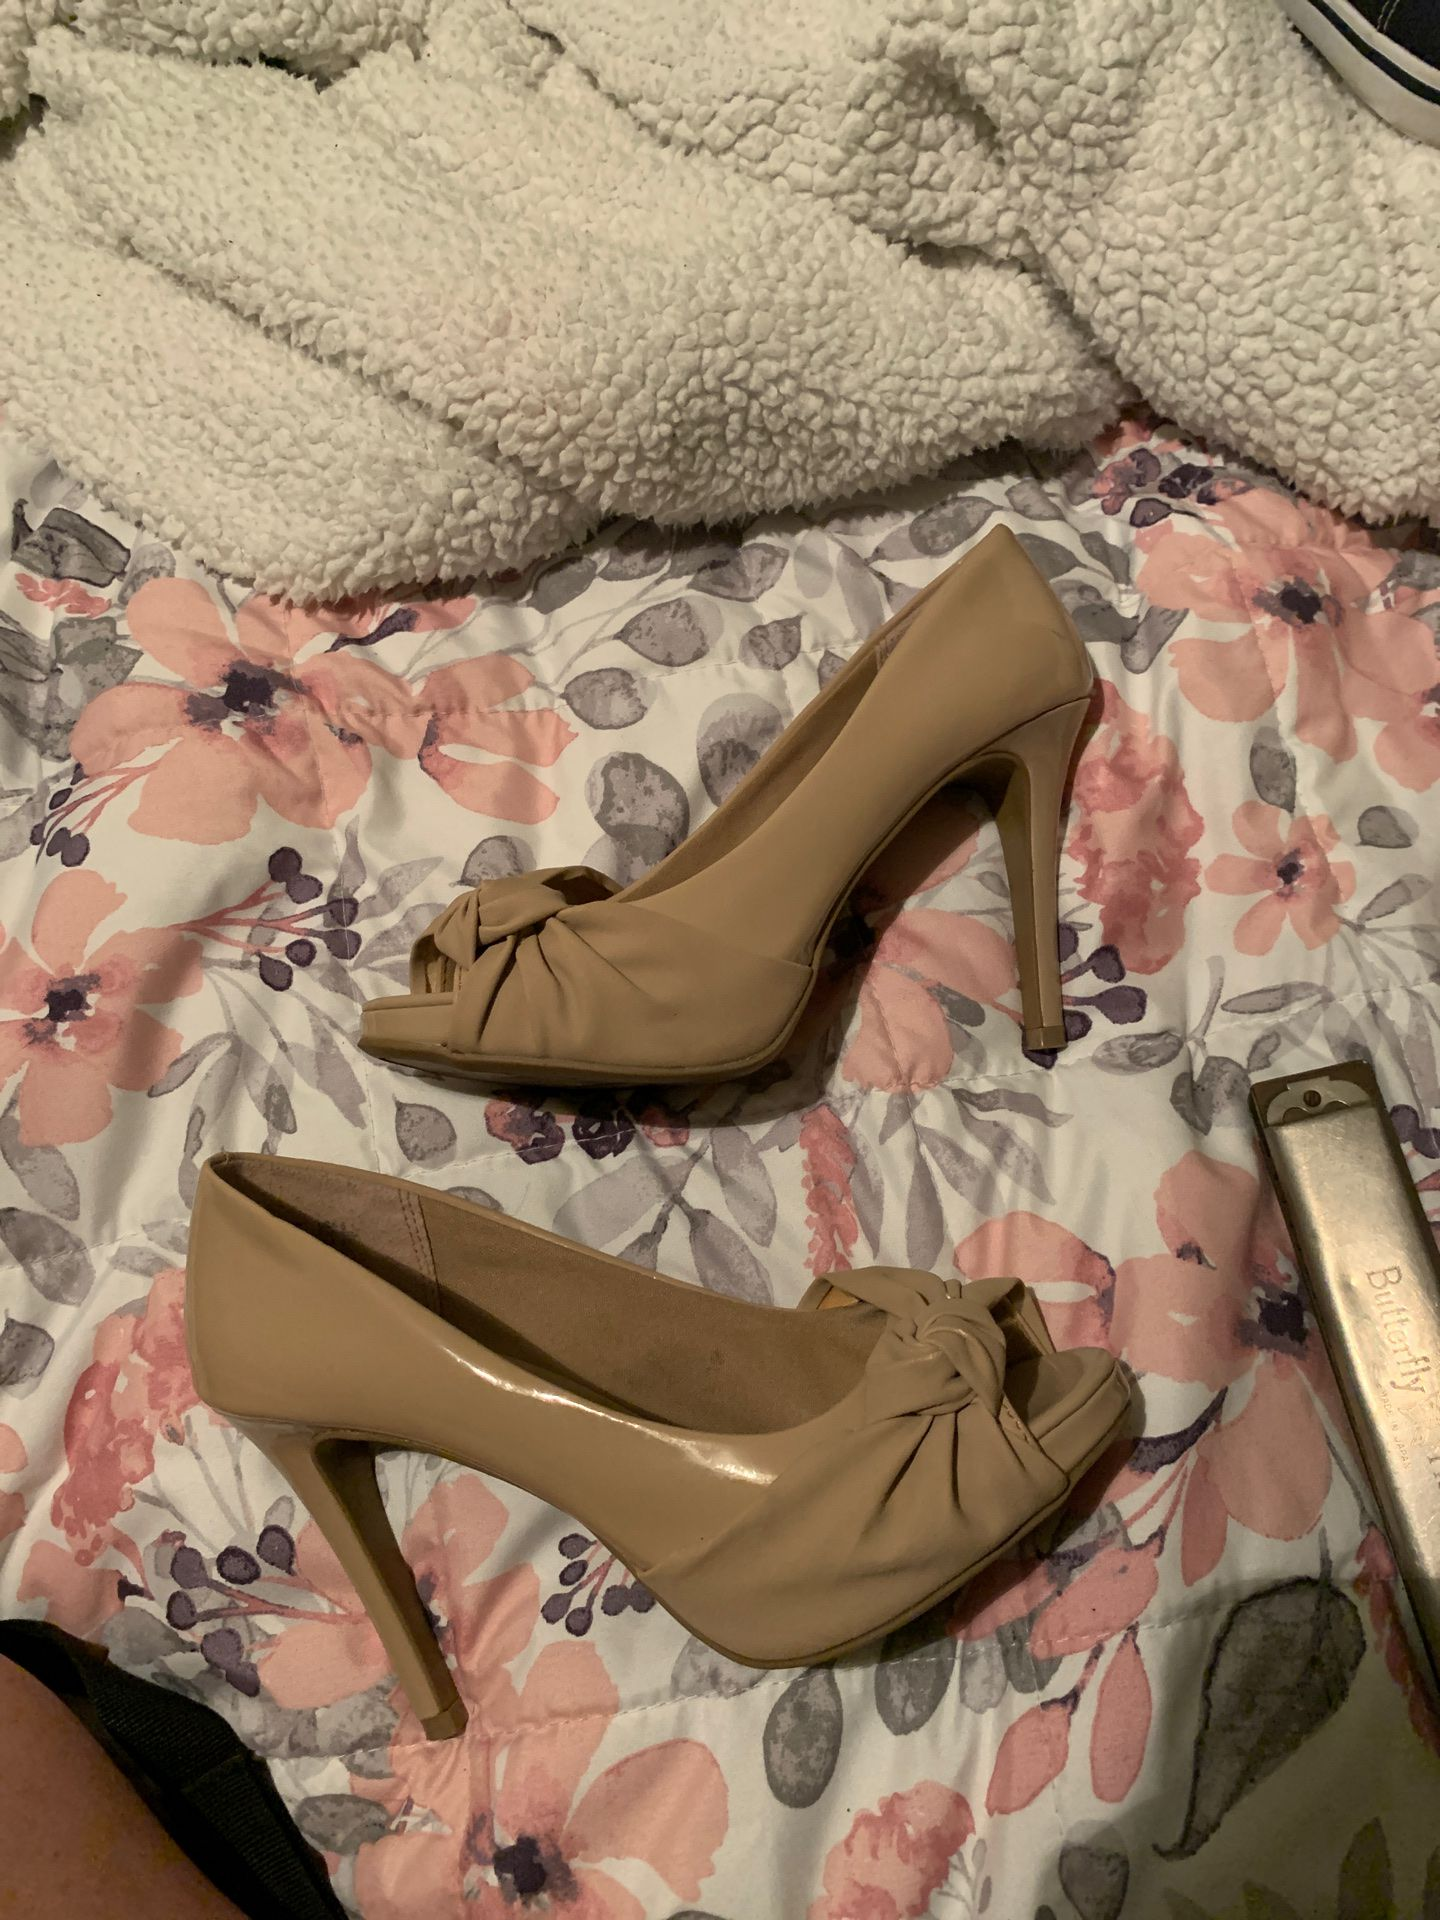 Nude Slip On Sandals for Sale in Tacoma, WA - OfferUp